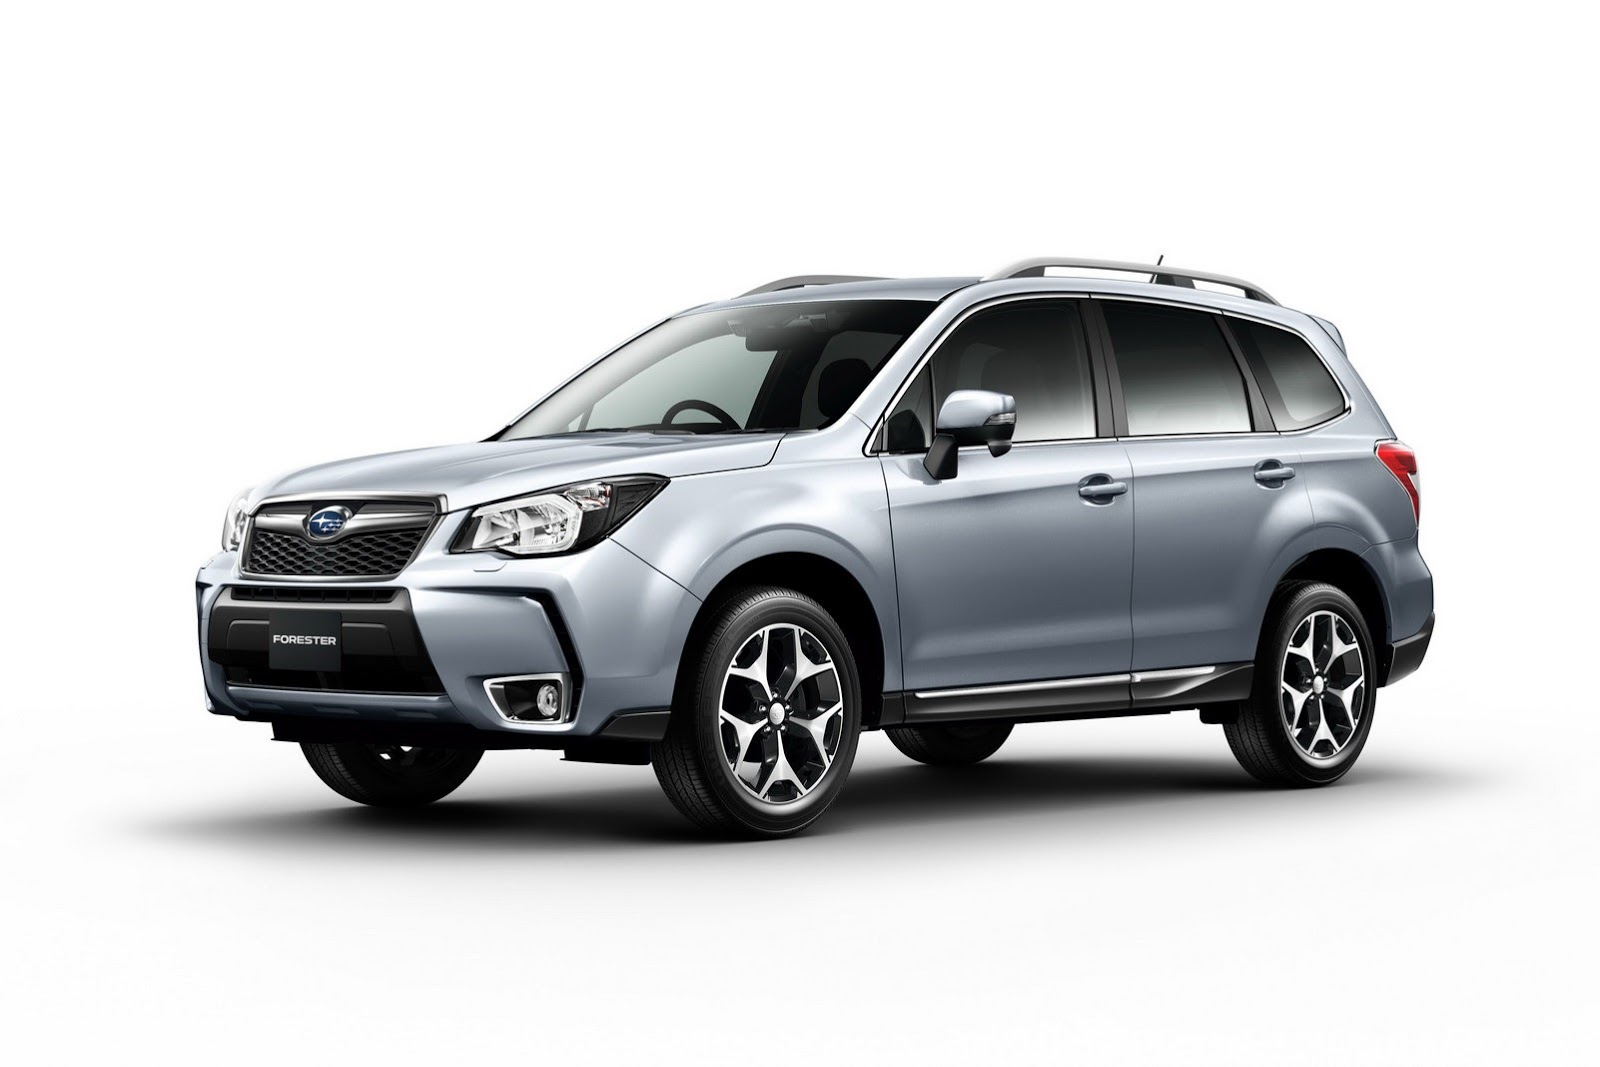 subaru officially reveals 2014 forester autoevolution. Black Bedroom Furniture Sets. Home Design Ideas